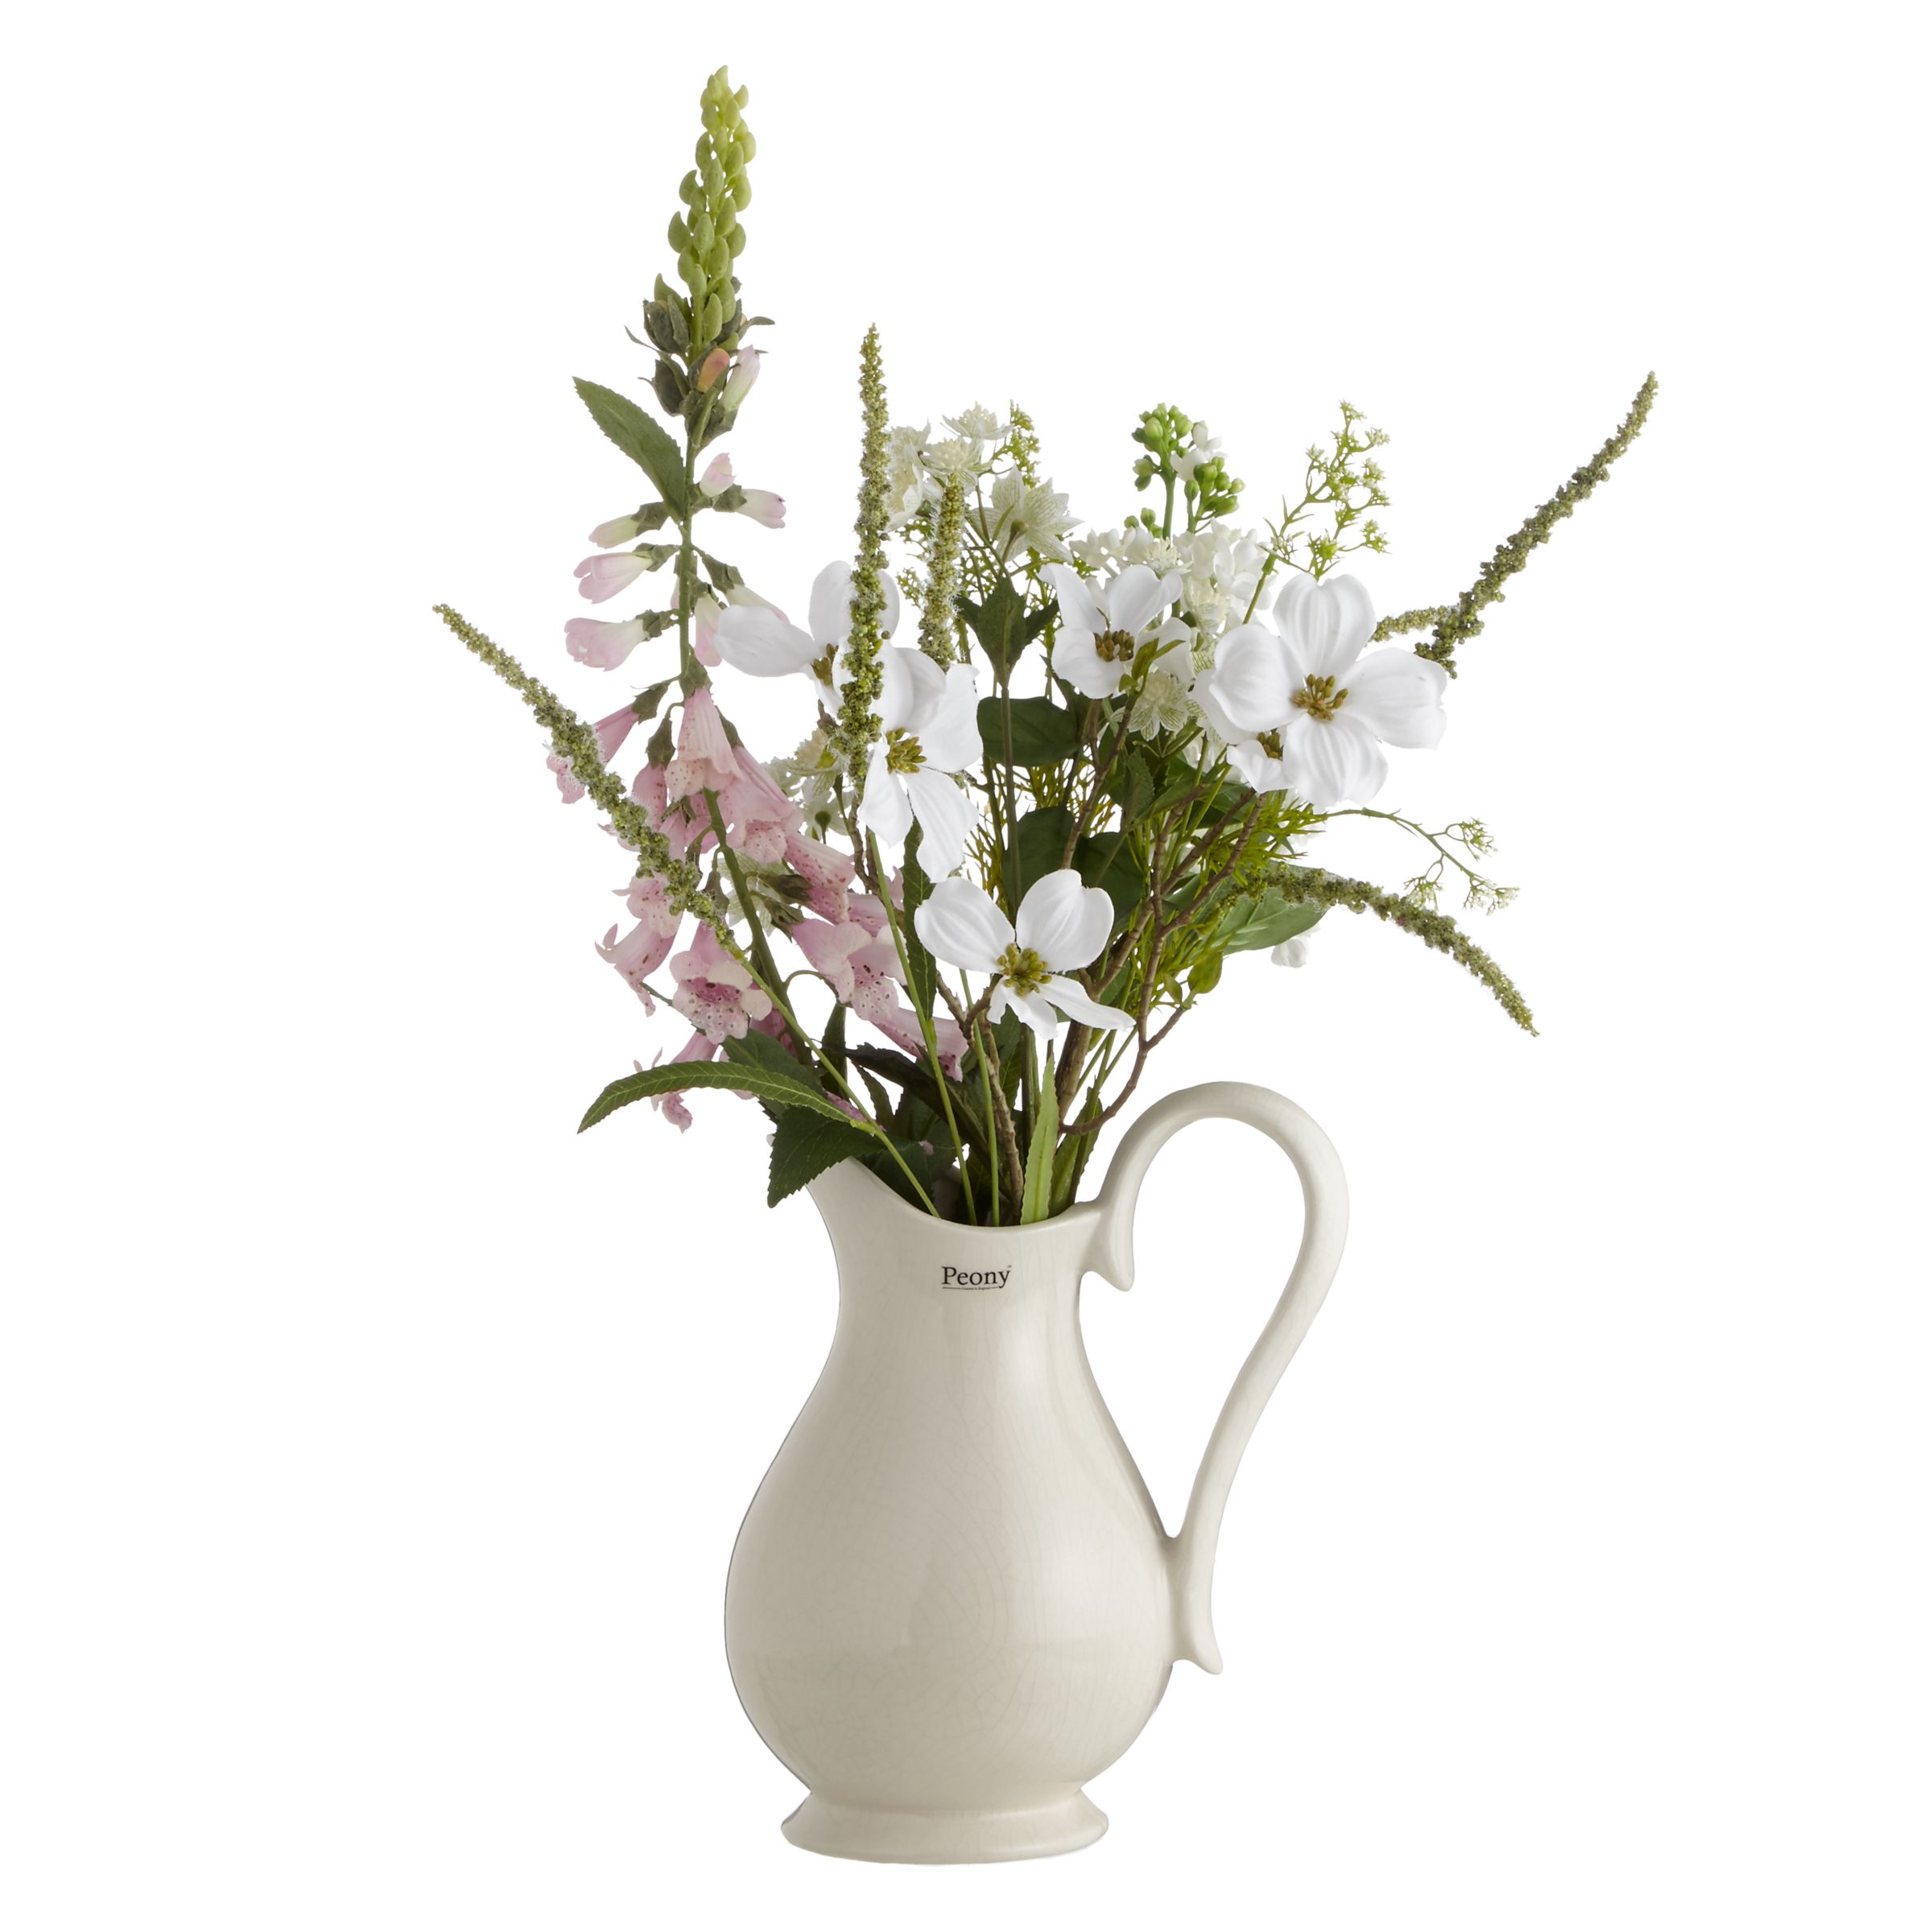 Peony Peony Cottage Garden Mixed Flowers in a Jug, Large